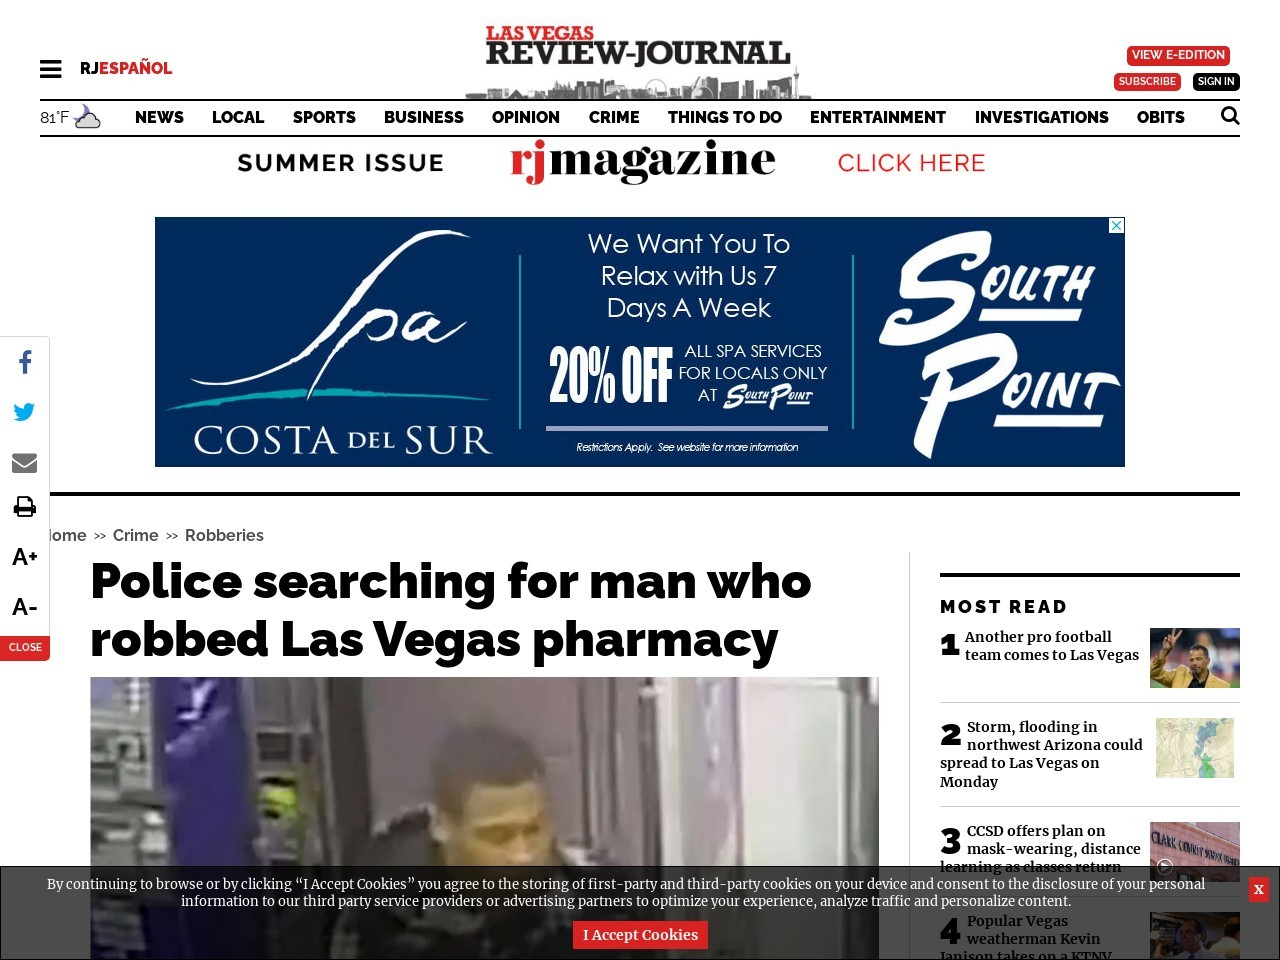 Police searching for man who robbed Las Vegas pharmacy